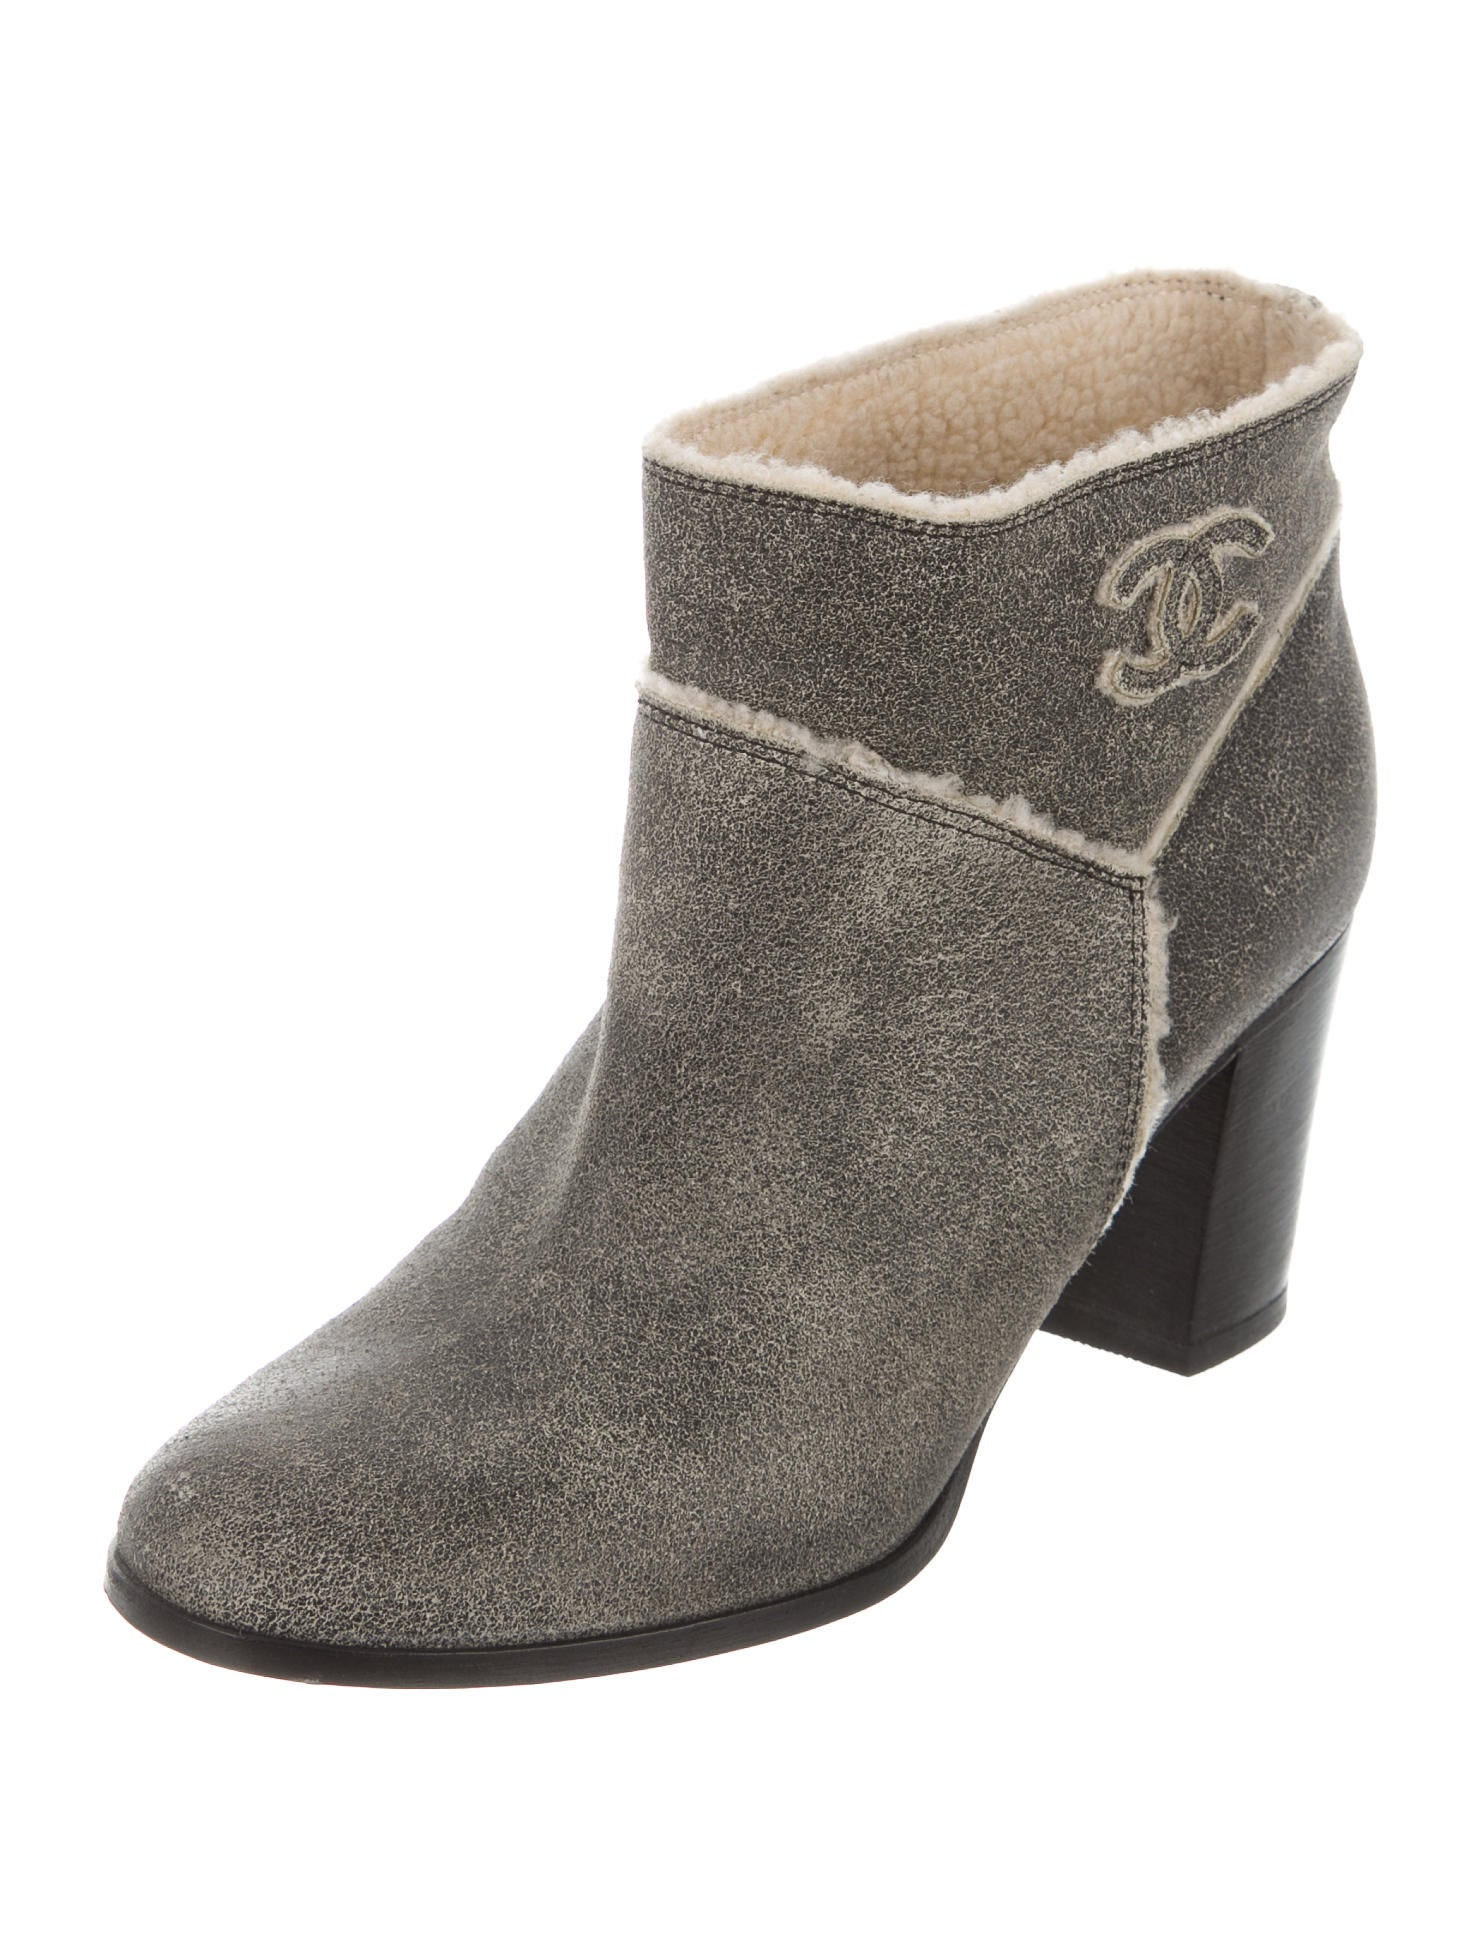 chanel suede shearling trimmed ankle boots shoes